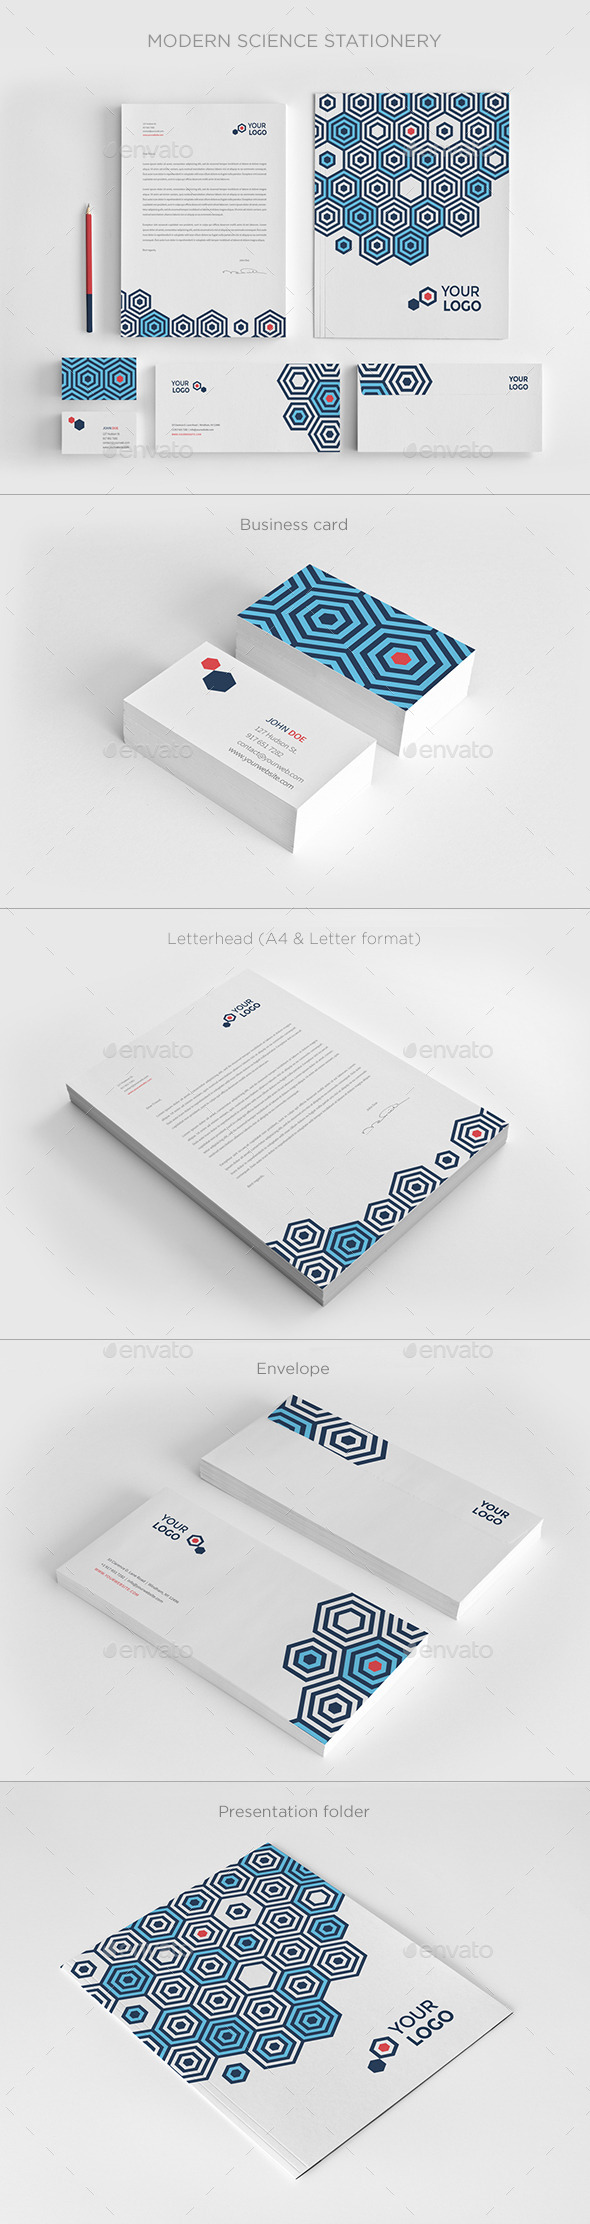 GraphicRiver Modern Science Stationery 11447332